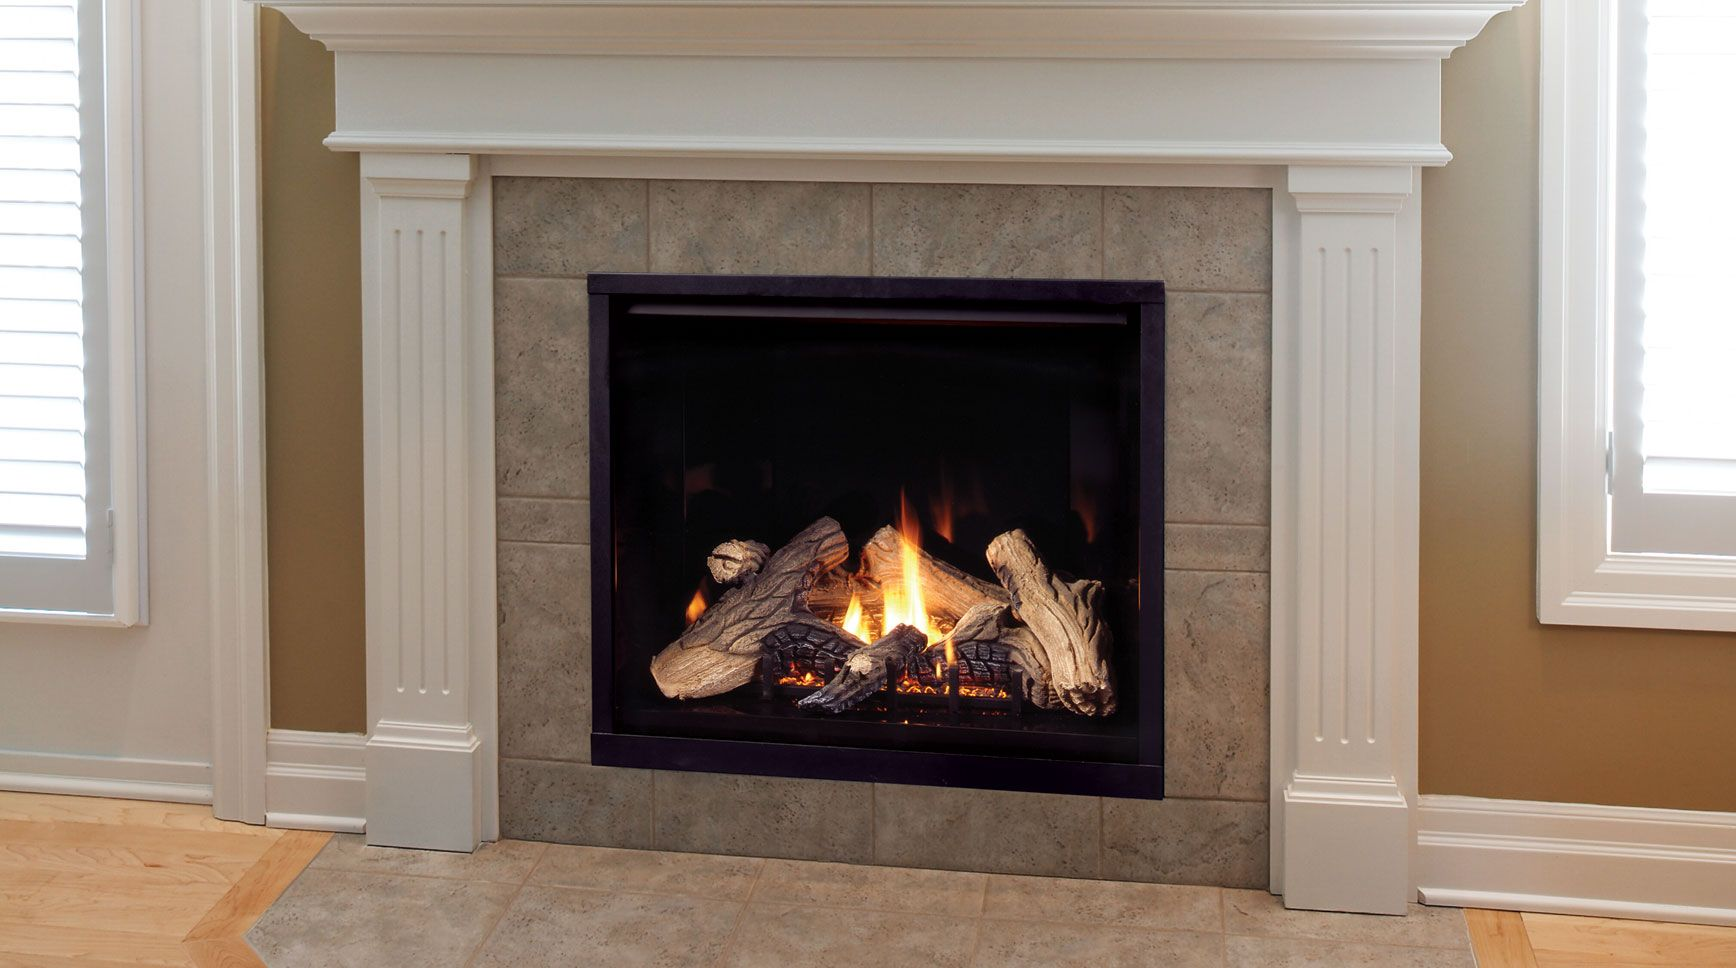 Gas Fireplaces Come In Vented Or Non Vented Systems Not